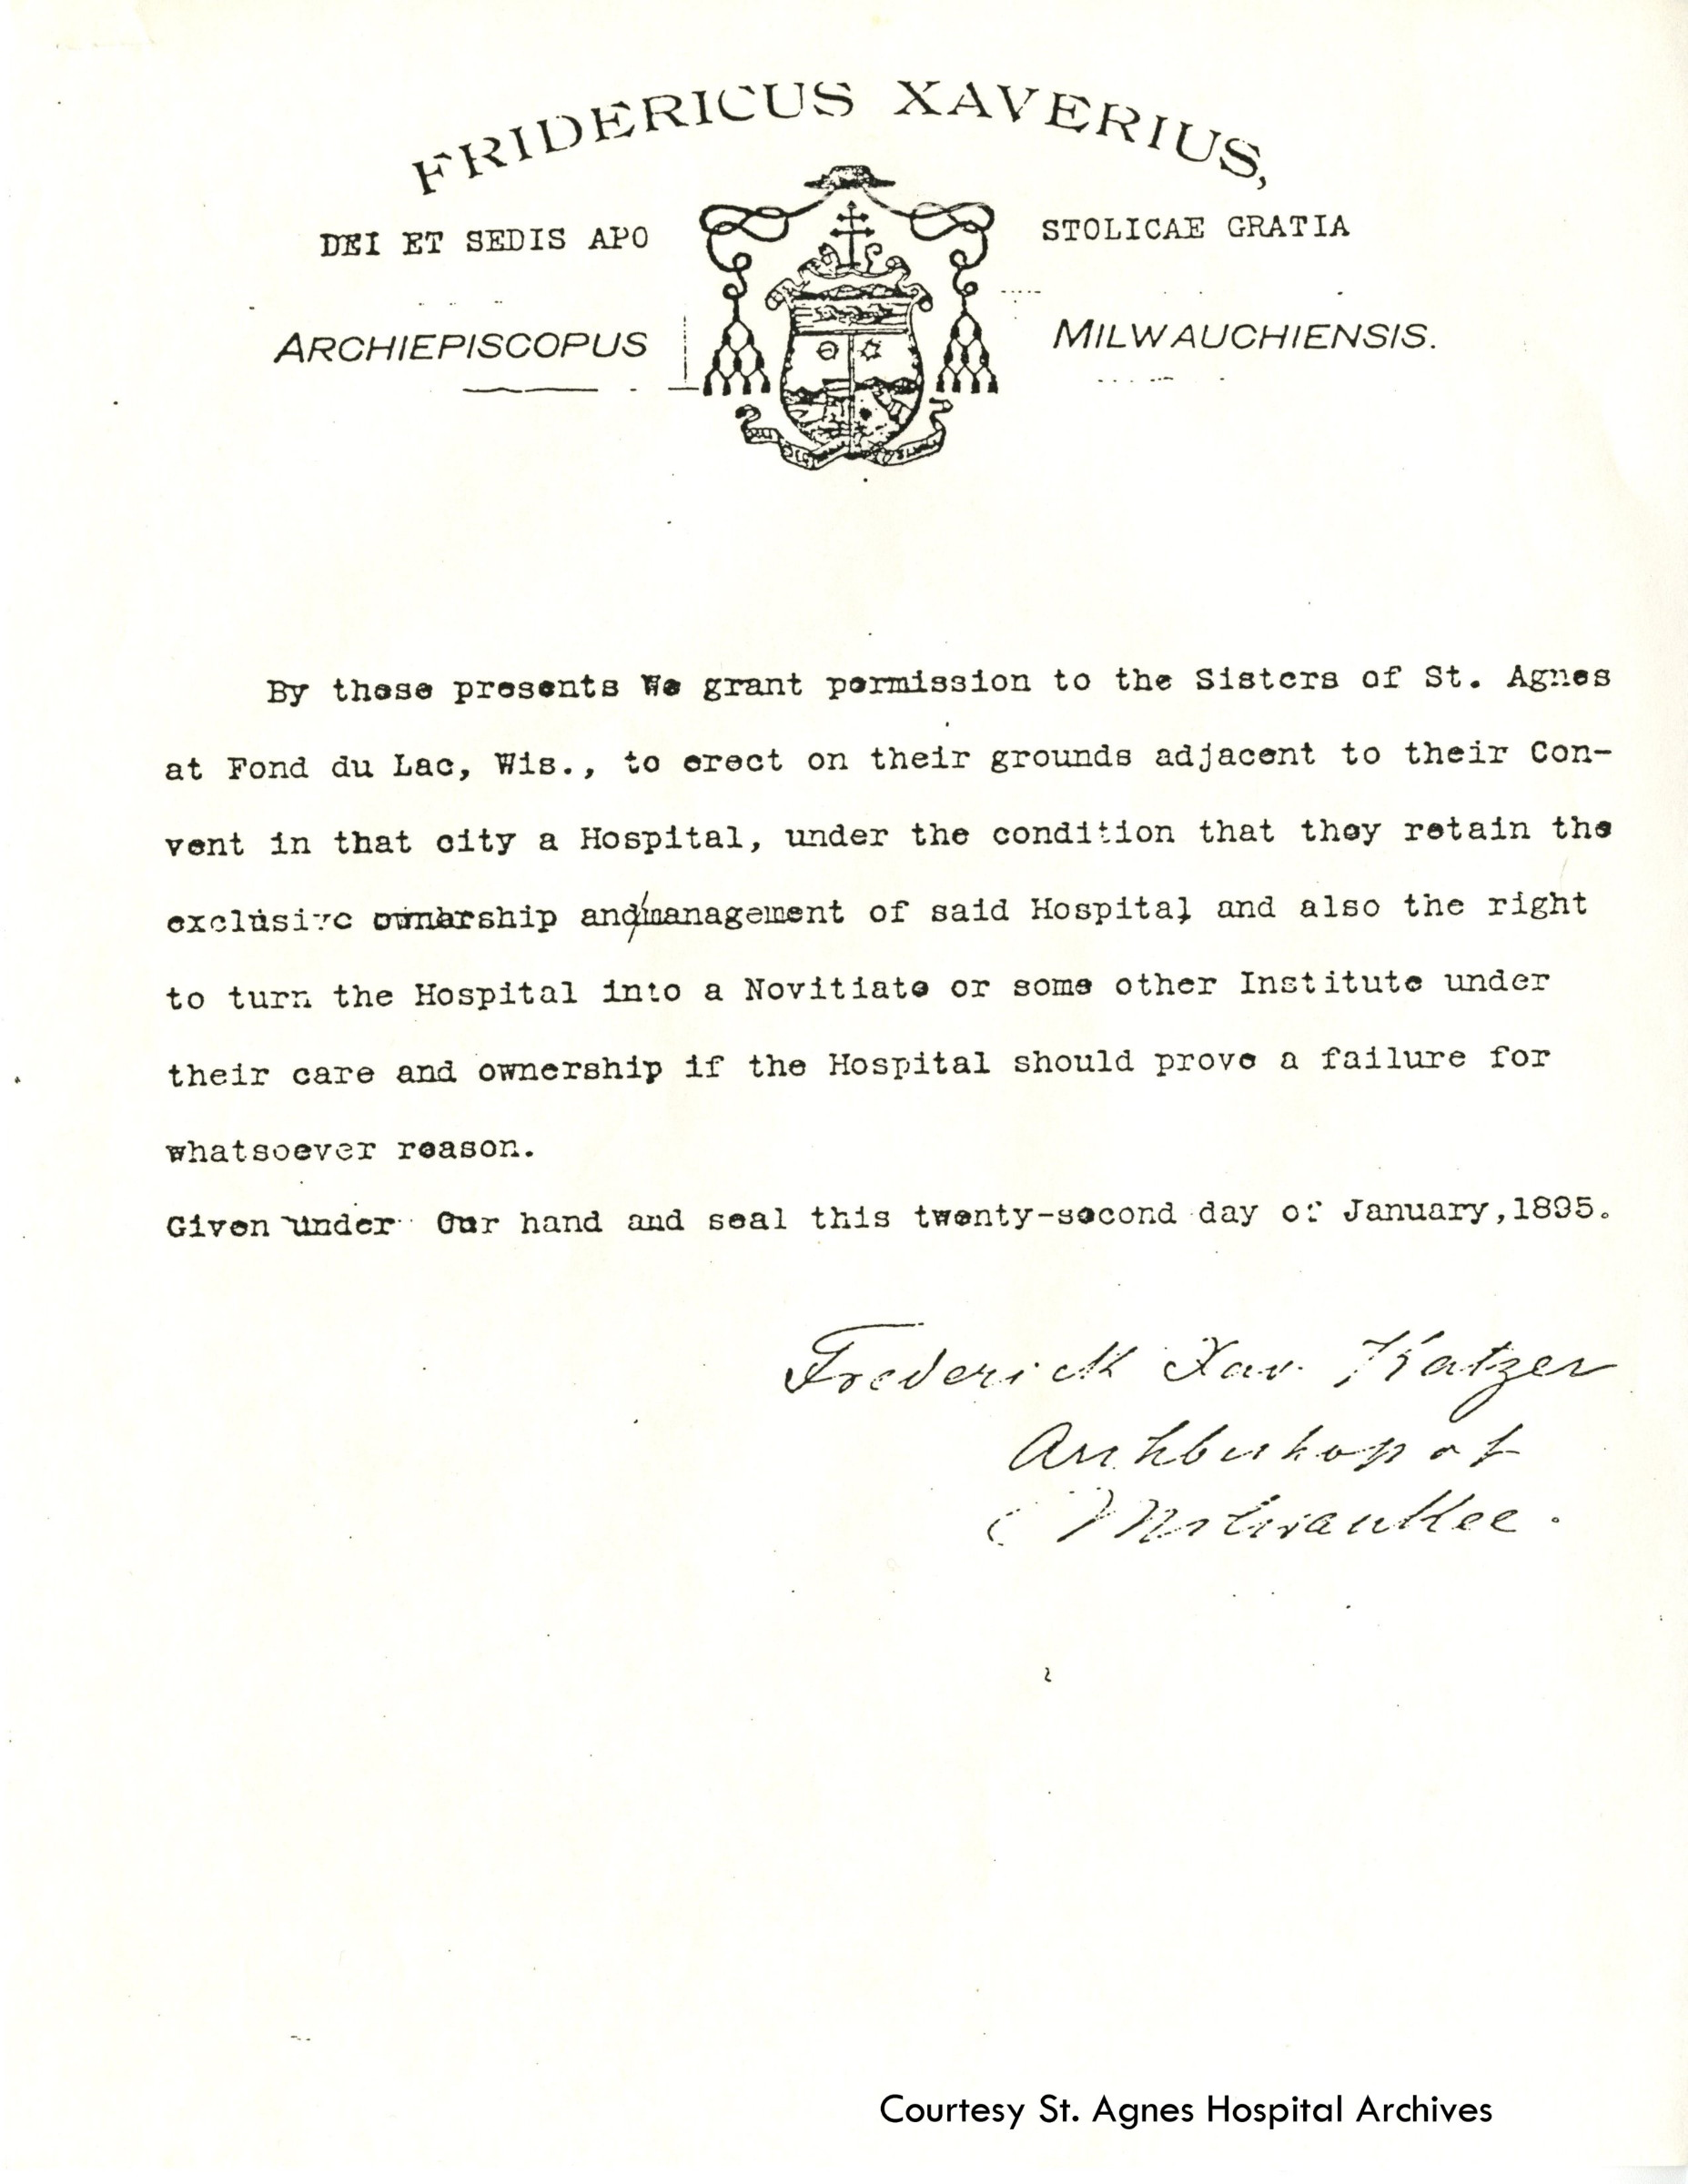 Proclamation from Archbishop Katzer approving construction of St. Agnes Hospital by Sisters of St. Agnes, 1895.